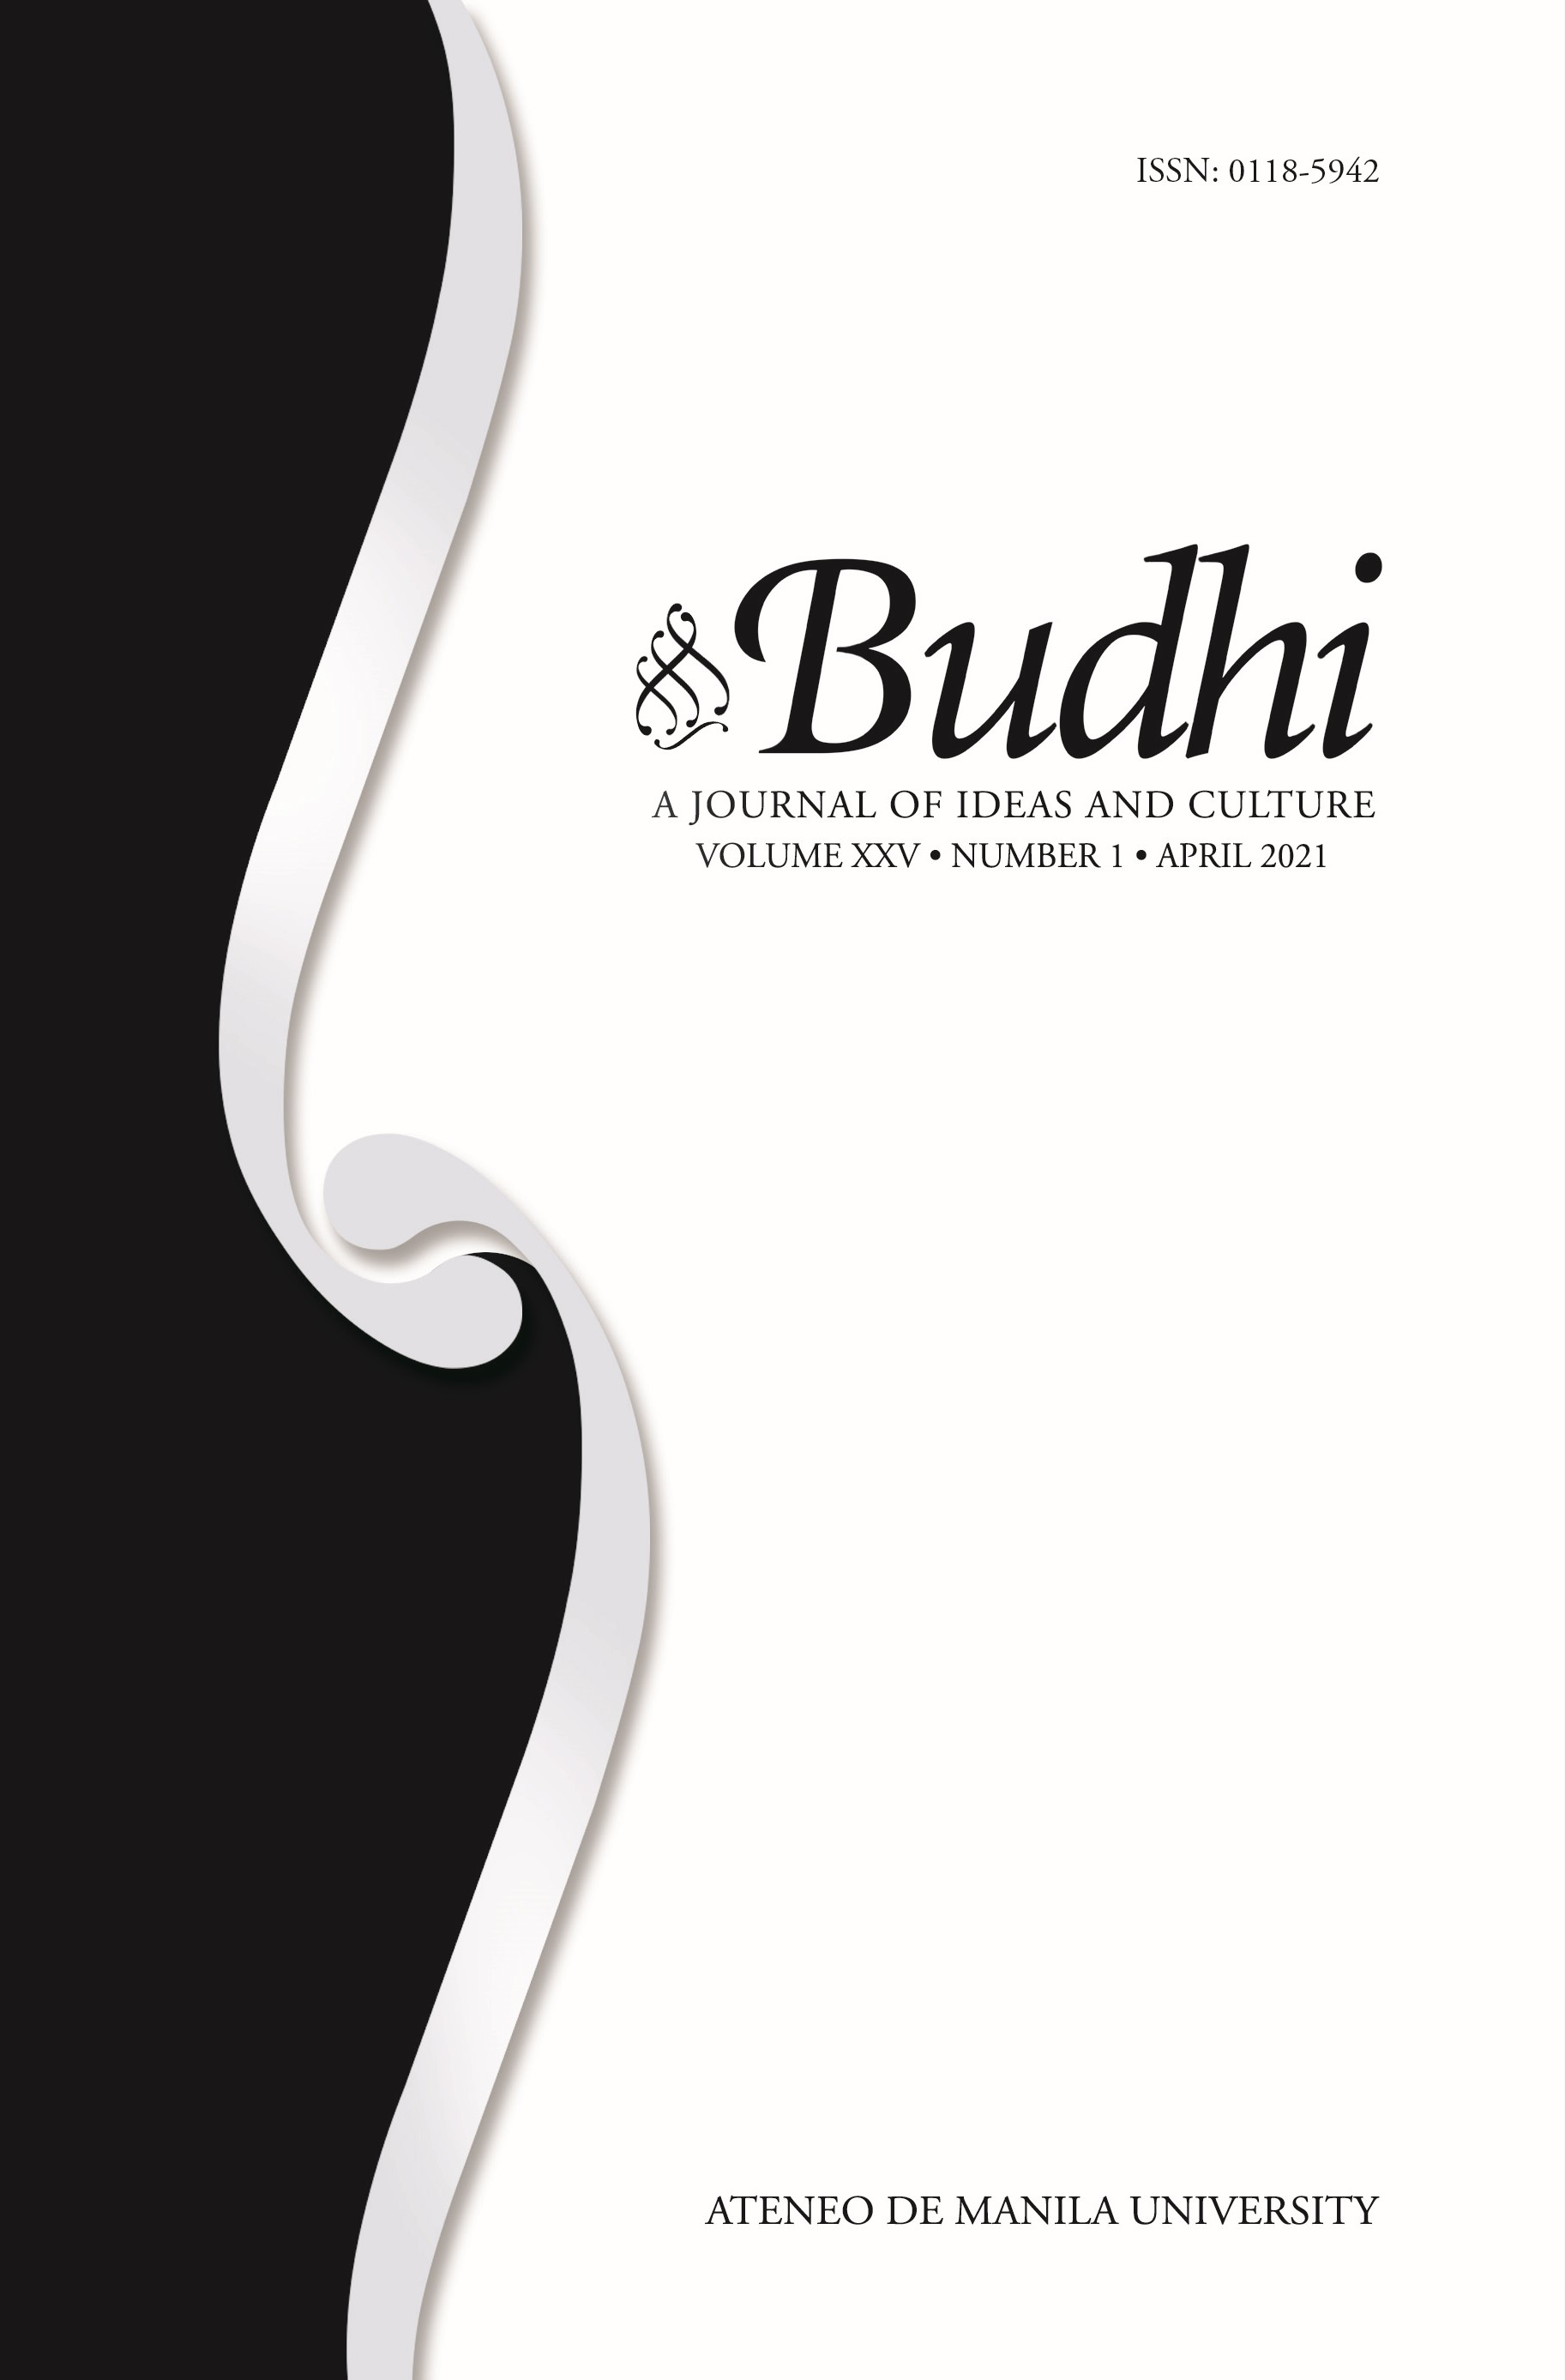 Budhi: A Journal of Ideas and Culture Image